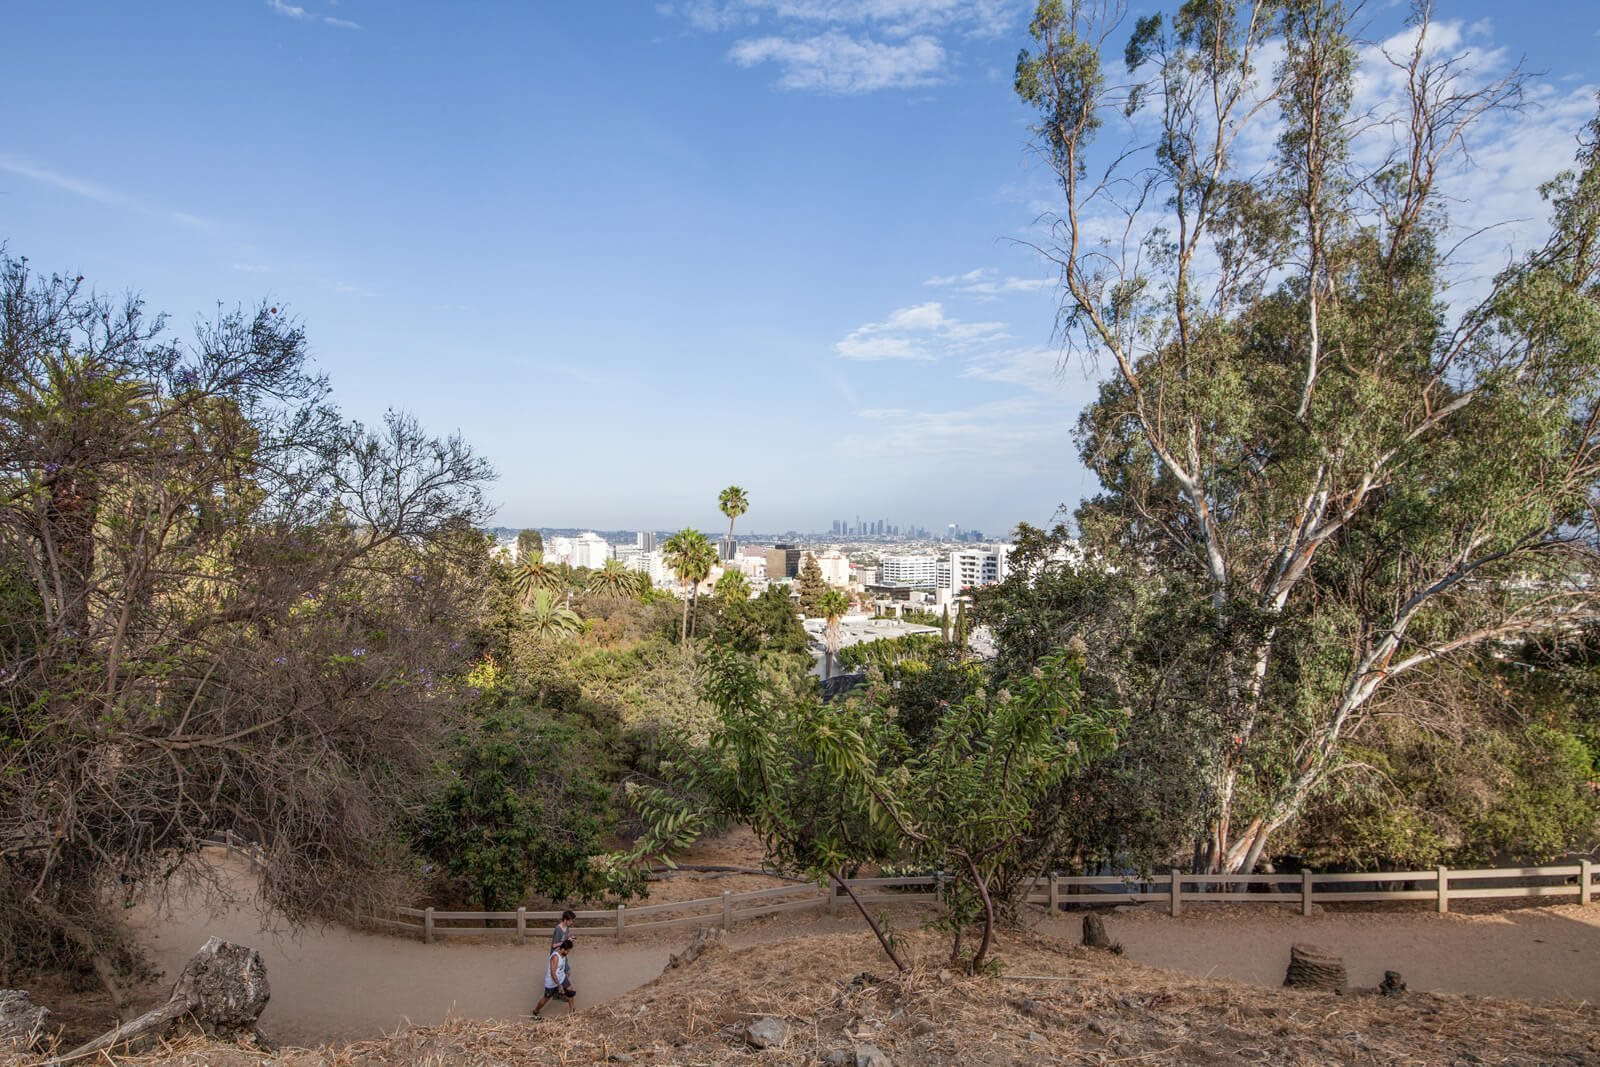 Walk, Run, Hike or Bike to Runyon Canyon at Windsor from Hancock Park, Los Angeles, California